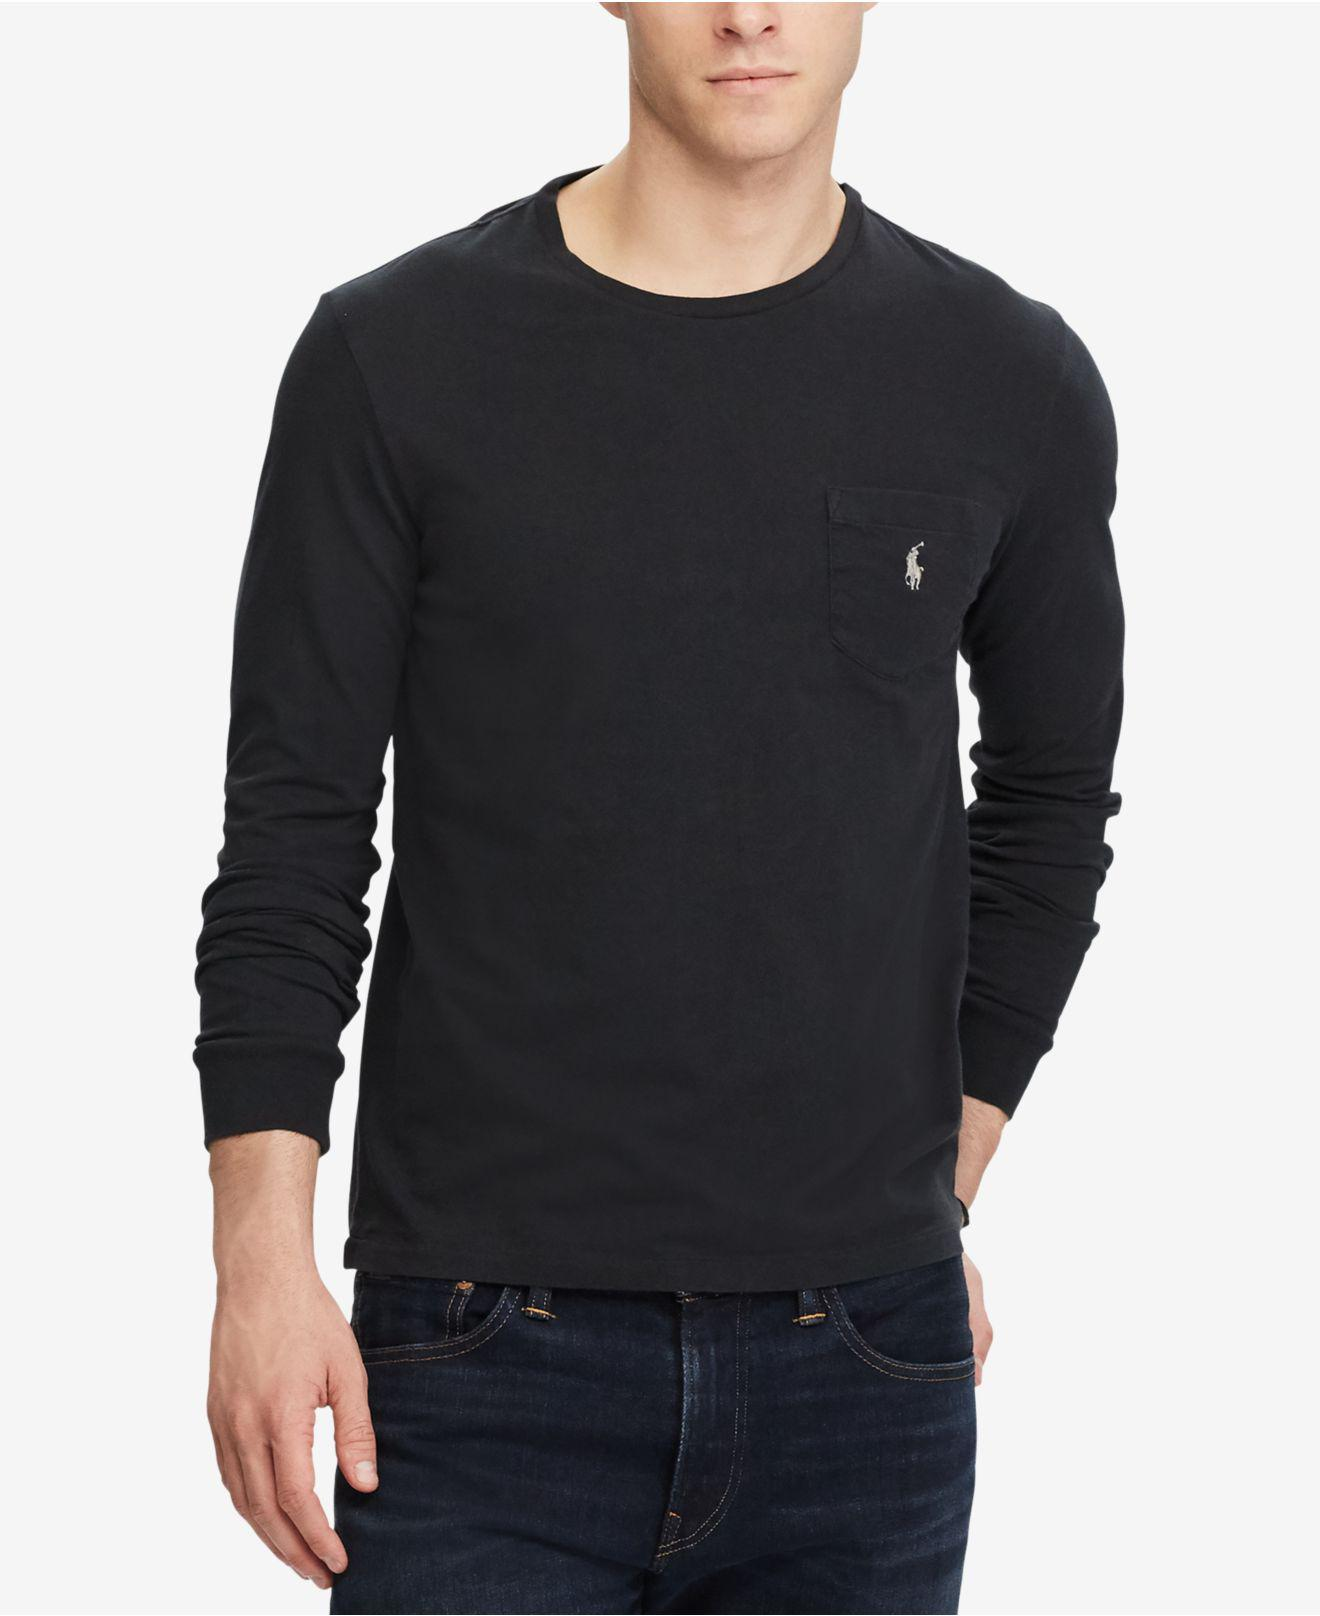 d3c52f319 ... top quality lyst polo ralph lauren mens custom slim fit long sleeve cotton  t b5ceb 6cb66